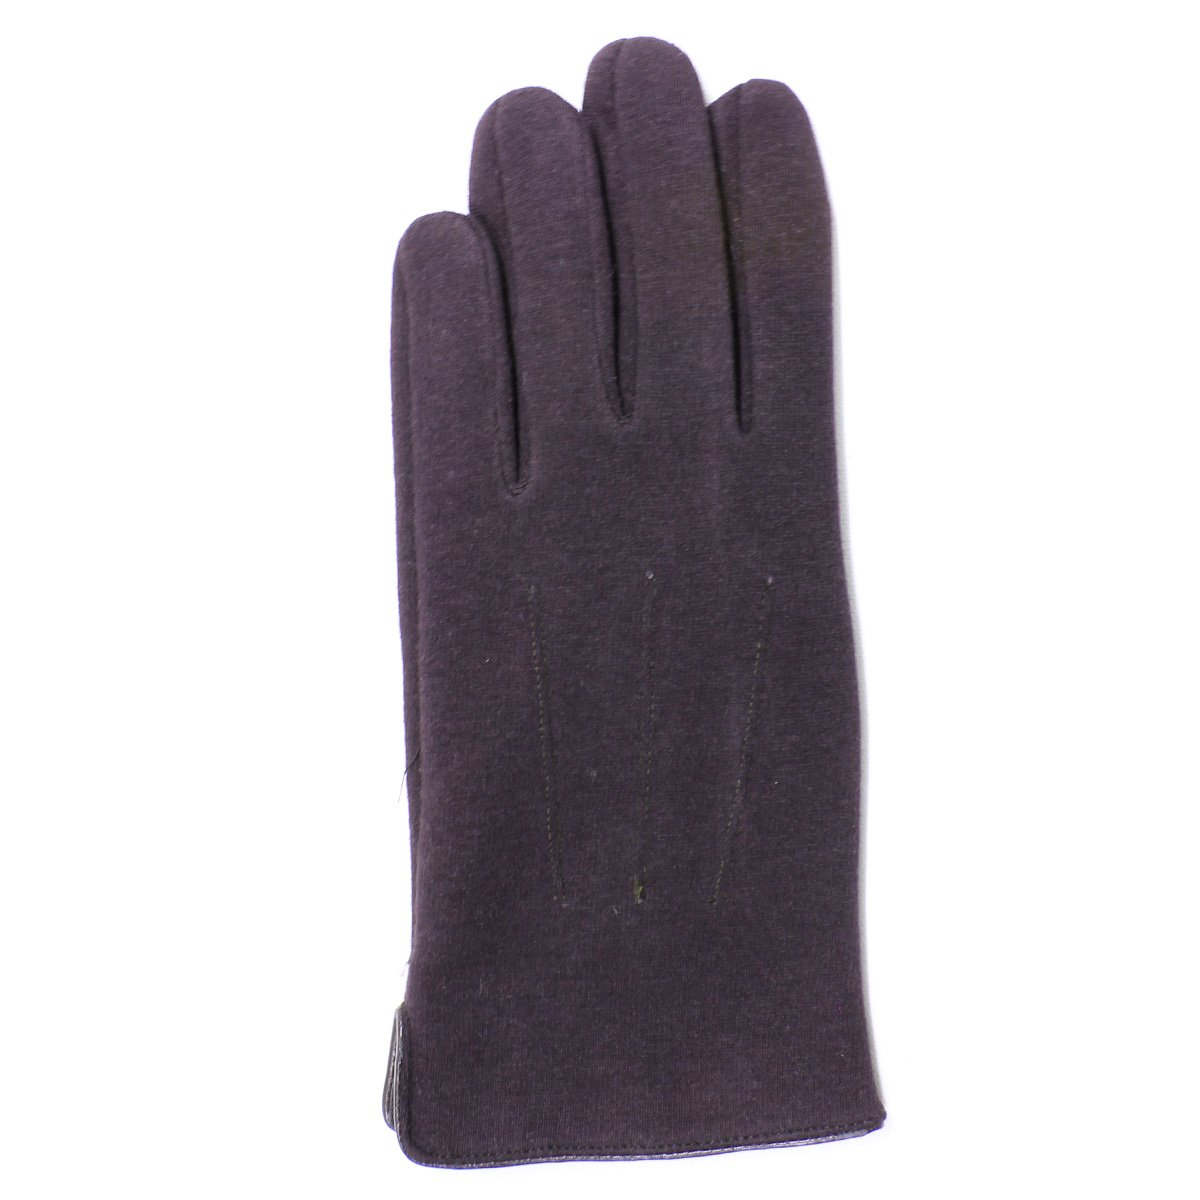 LL- Mens Warm Touch Screen Gloves for Smartphone Texting- Fleece Lined, Midweight (Large/XLarge, Brown)